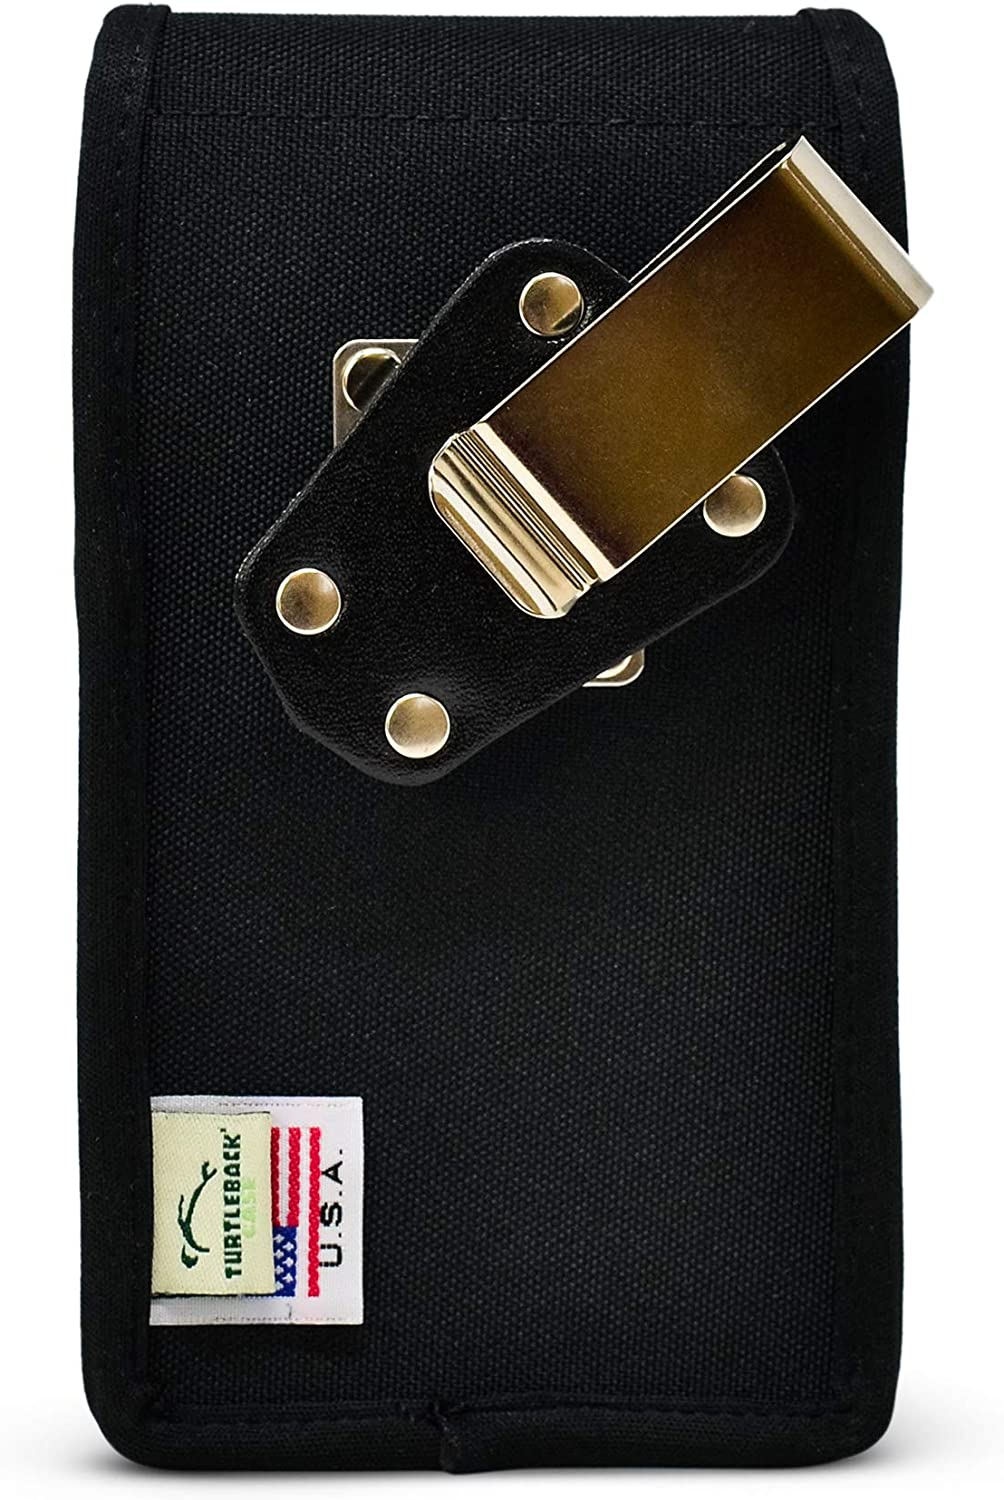 Turtleback Holster Designed for iPhone 13 Pro, 13/12 & 12 Pro Vertical Holster Black Nylon Pouch with Heavy Duty Rotating Belt Clip, Made in USA